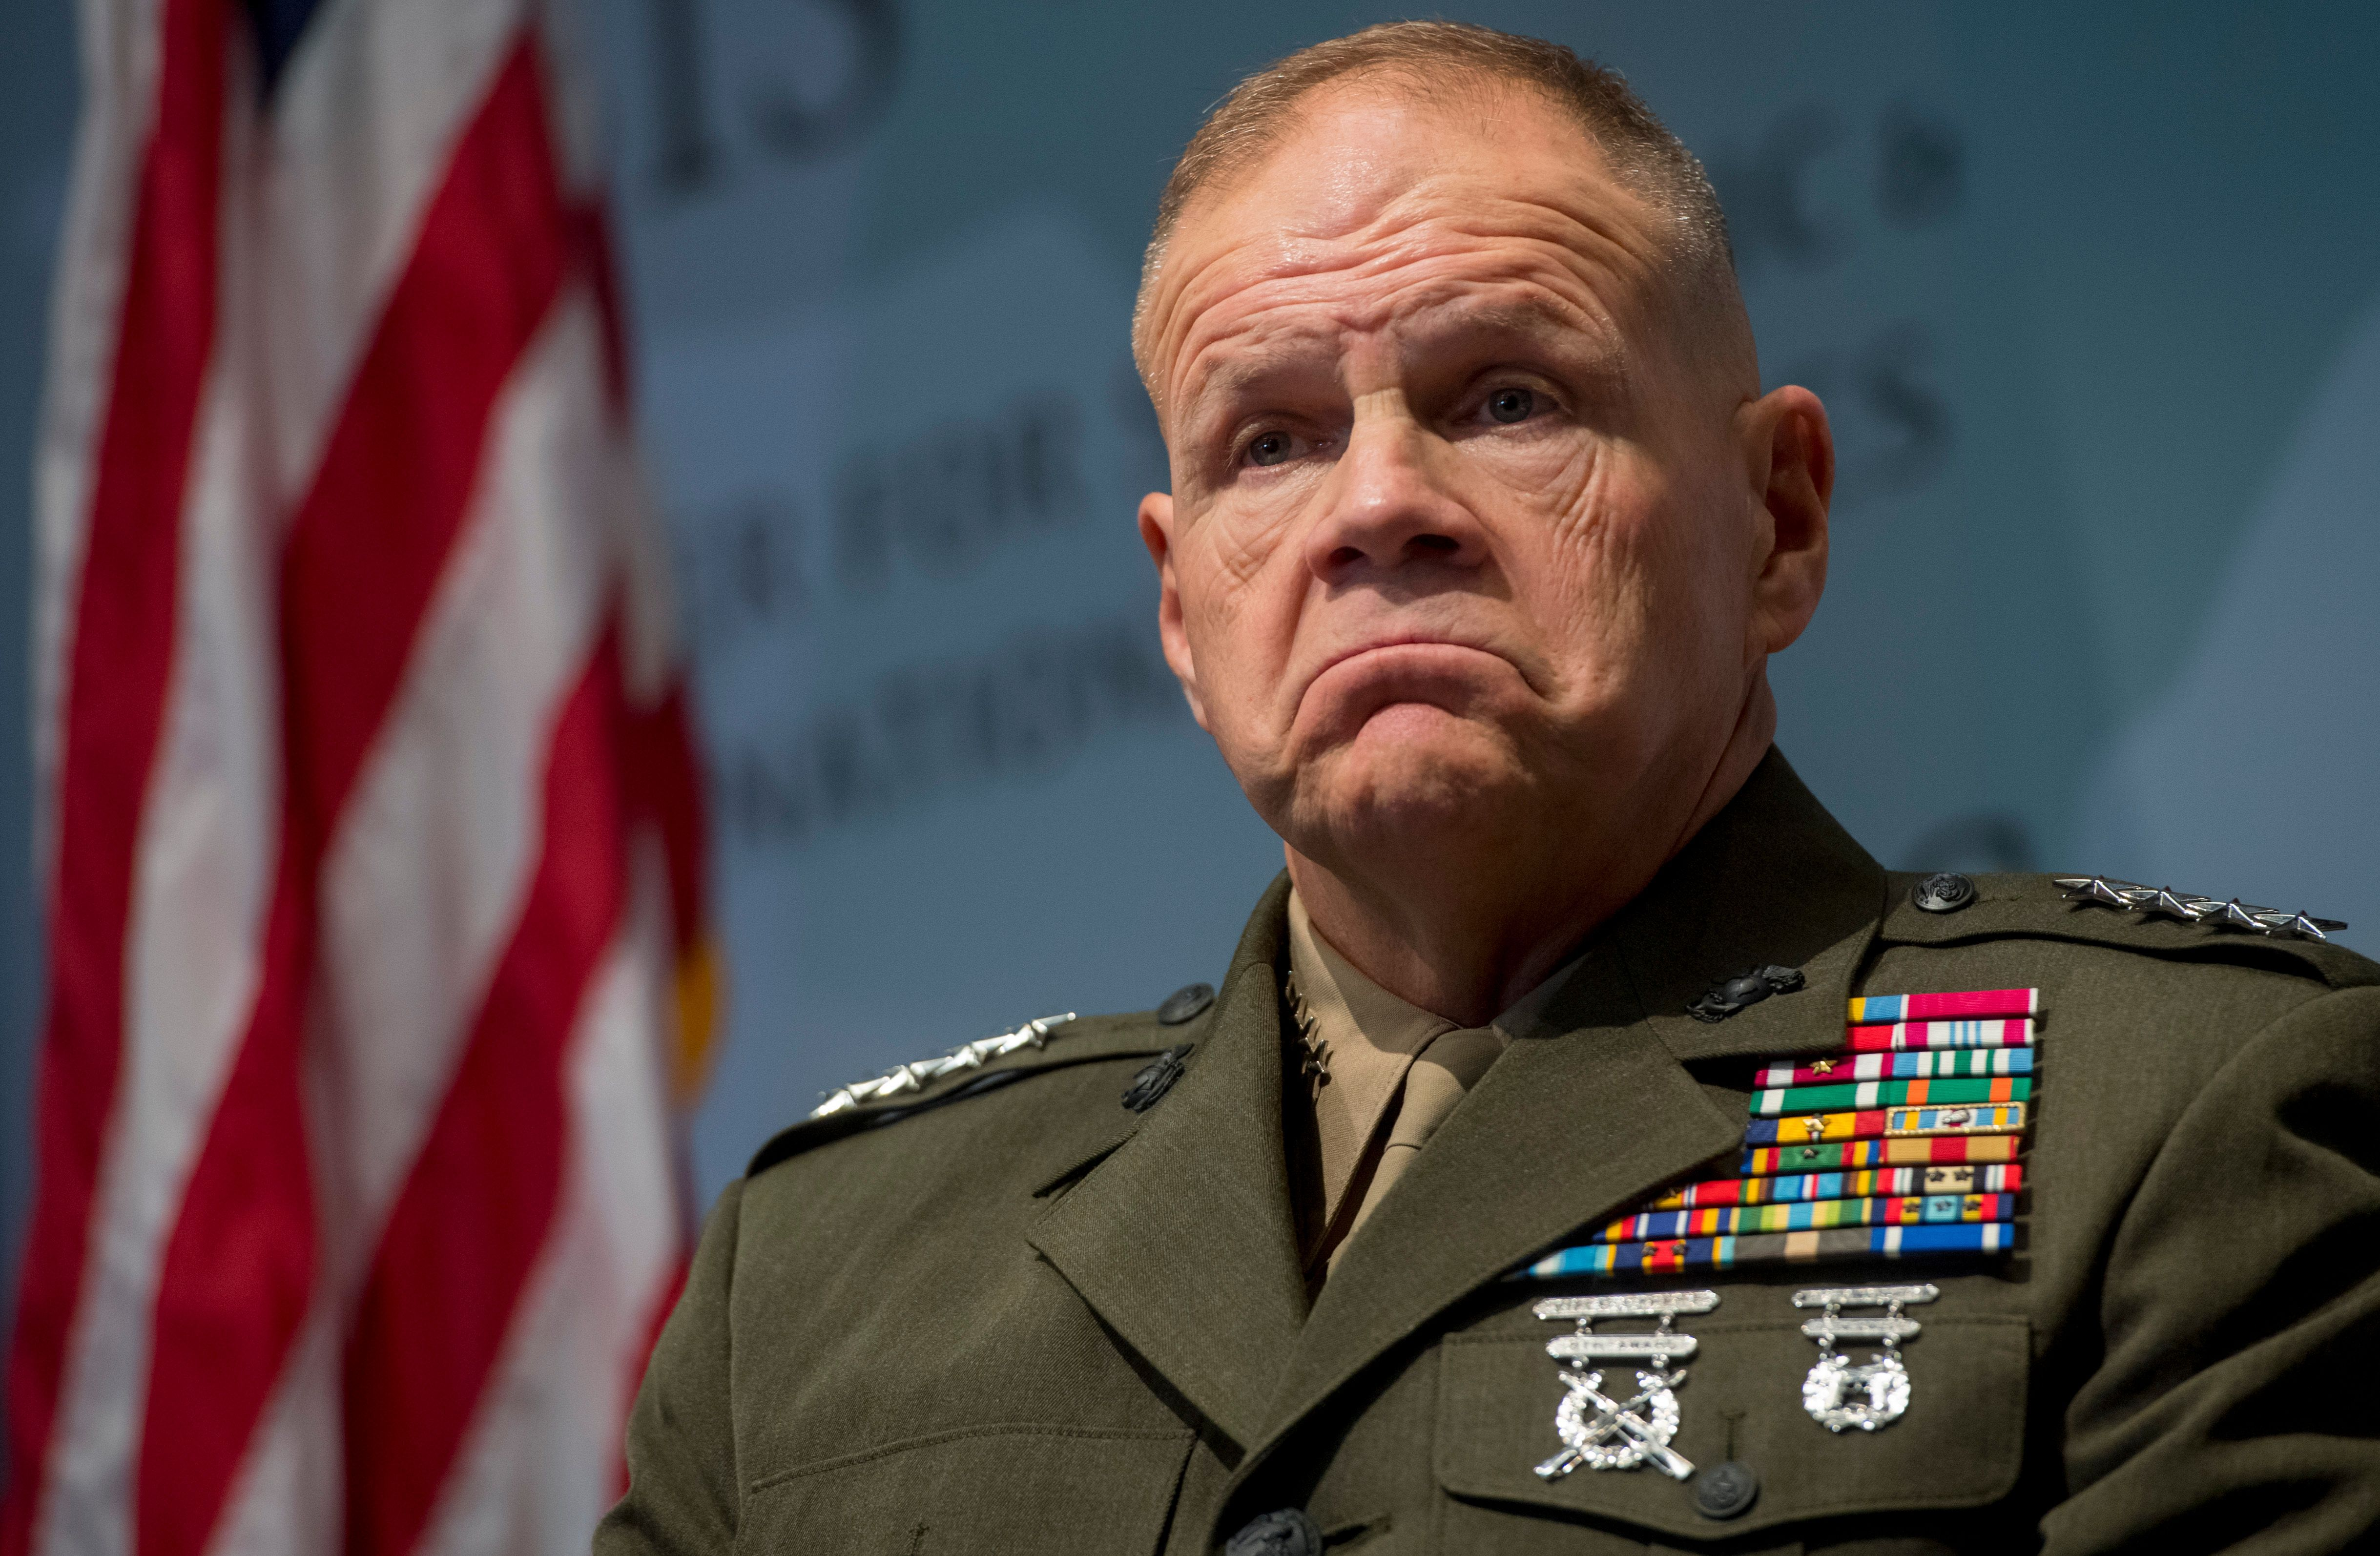 """Top general on details of Trump's withdrawal plans: """"I have no idea"""" - Axios"""